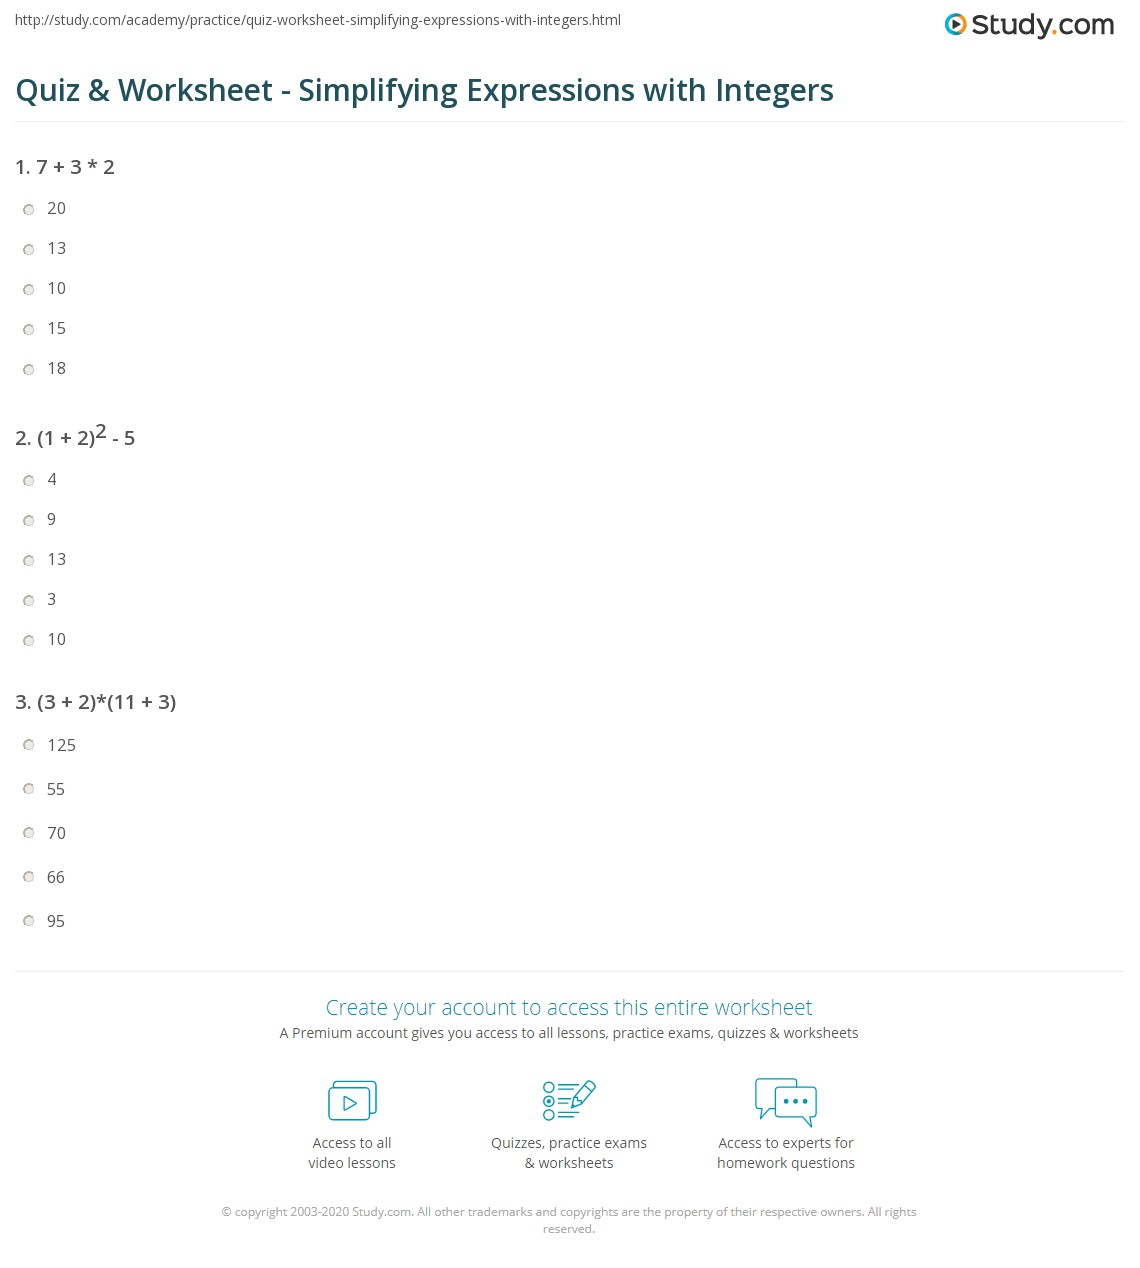 math worksheet : quiz  worksheet  simplifying expressions with integers  study  : Simplifying Expressions Worksheet